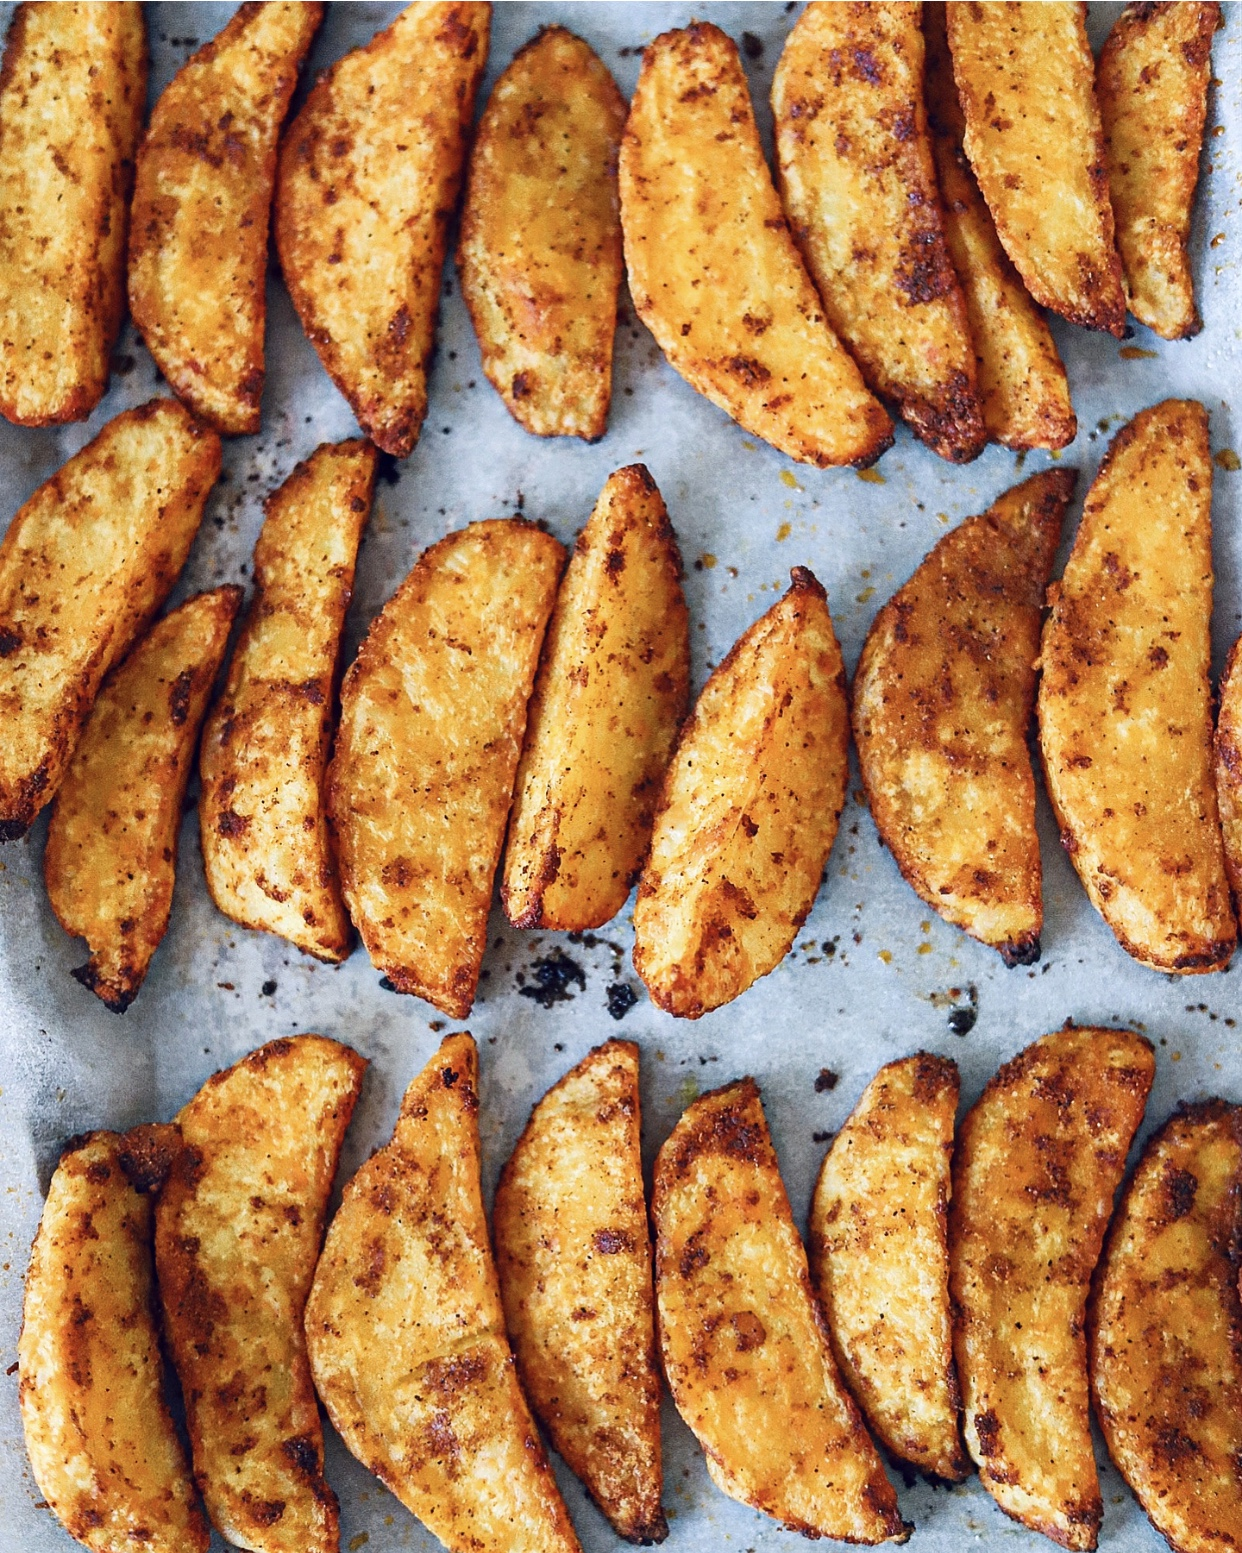 Are you ready for these Spicy Oven Baked Potato Wedges?